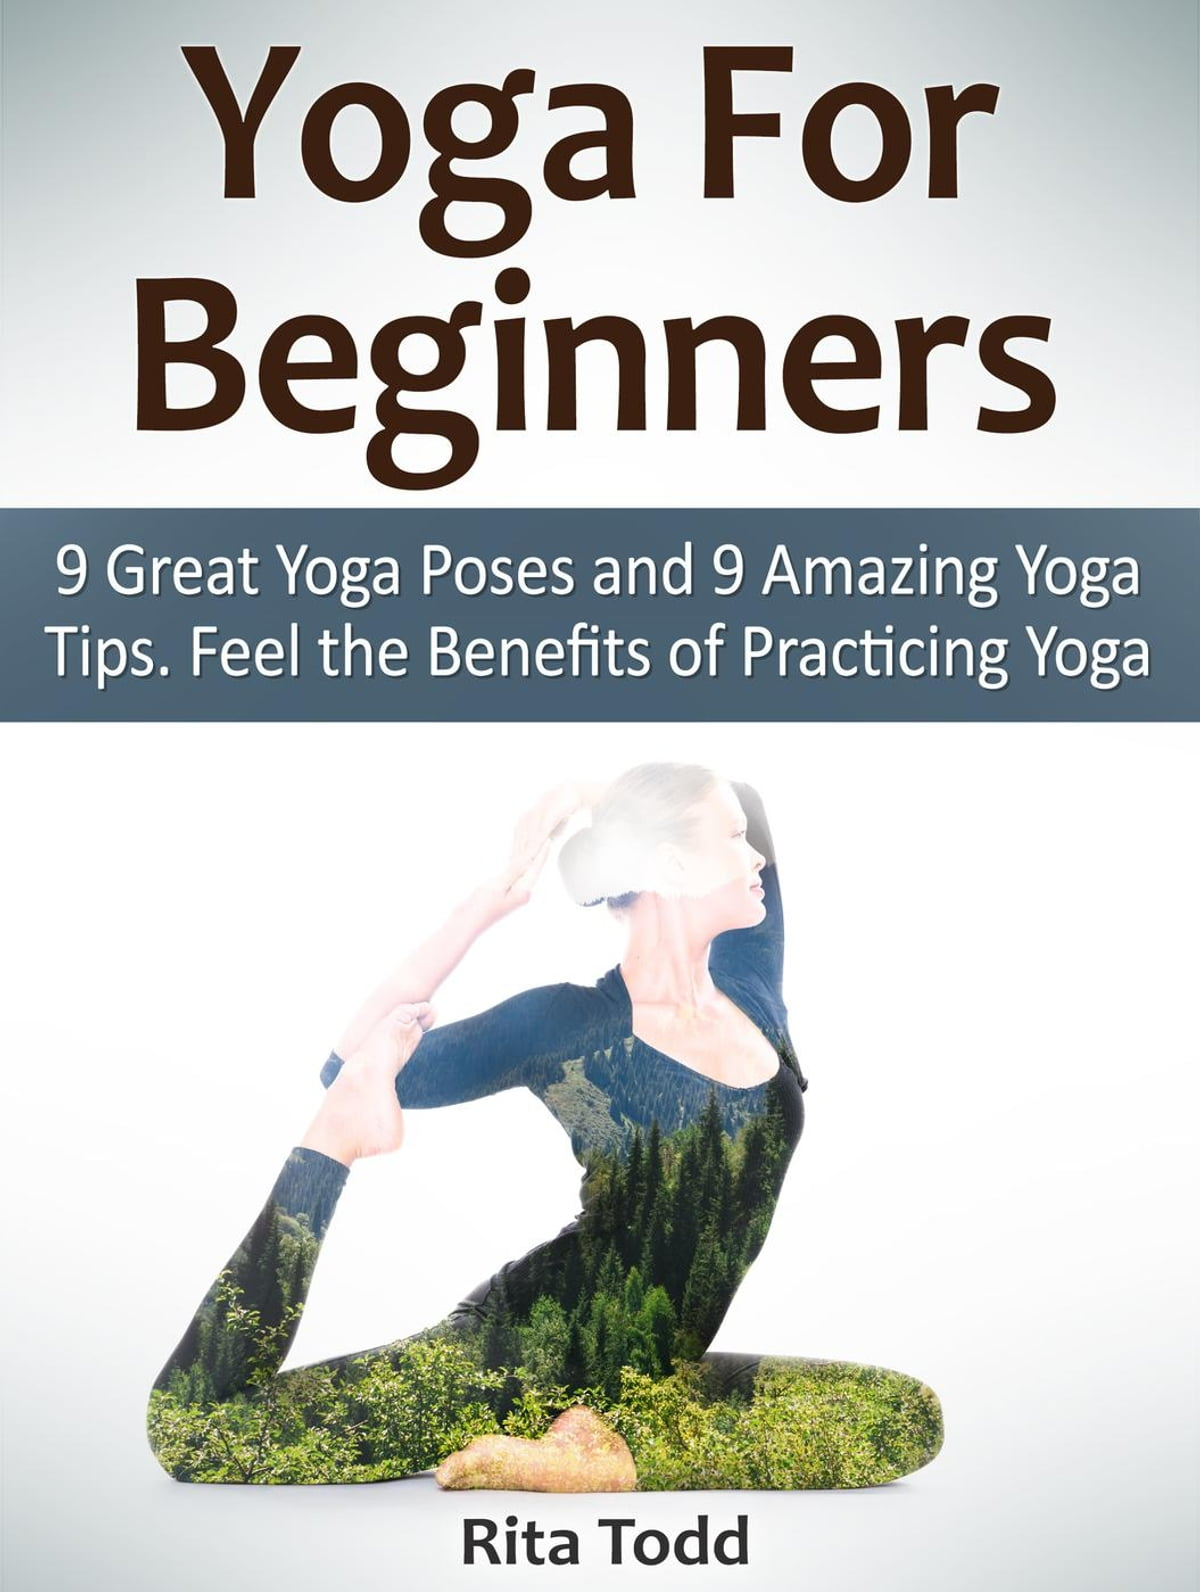 Yoga For Beginners: 33 Great Yoga Poses and 33 Amazing Yoga Tips. Feel the  Benefits of Practicing Yoga ebook by Rita Todd - Rakuten Kobo